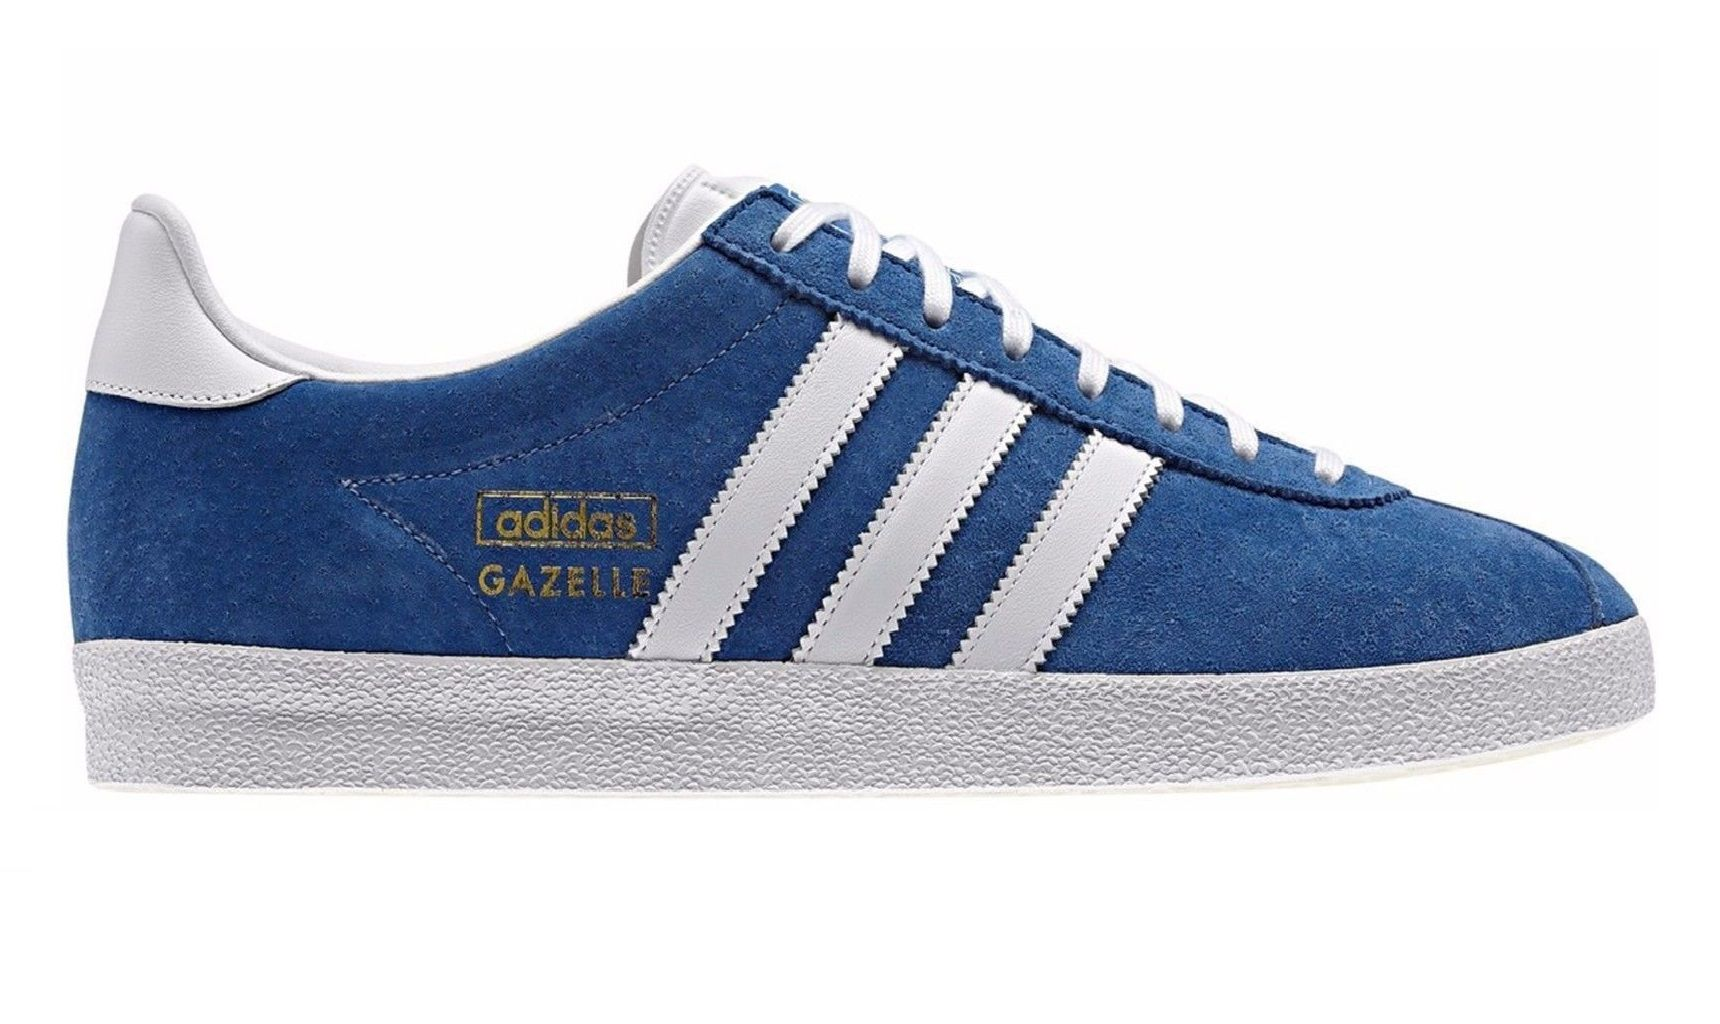 Adidas Originals Men's Gazelle OG Vintage Royal Suede Leather Casual Shoes Trainers